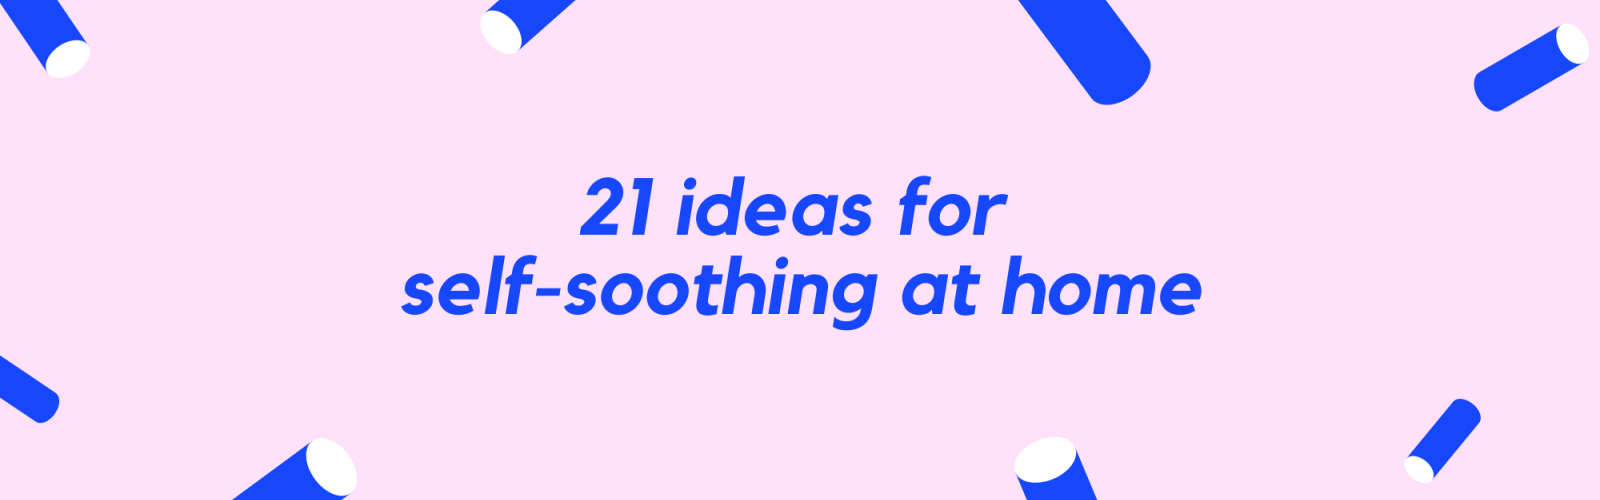 "In blue writing it reads, ""21 ideas for self-soothing at home."""